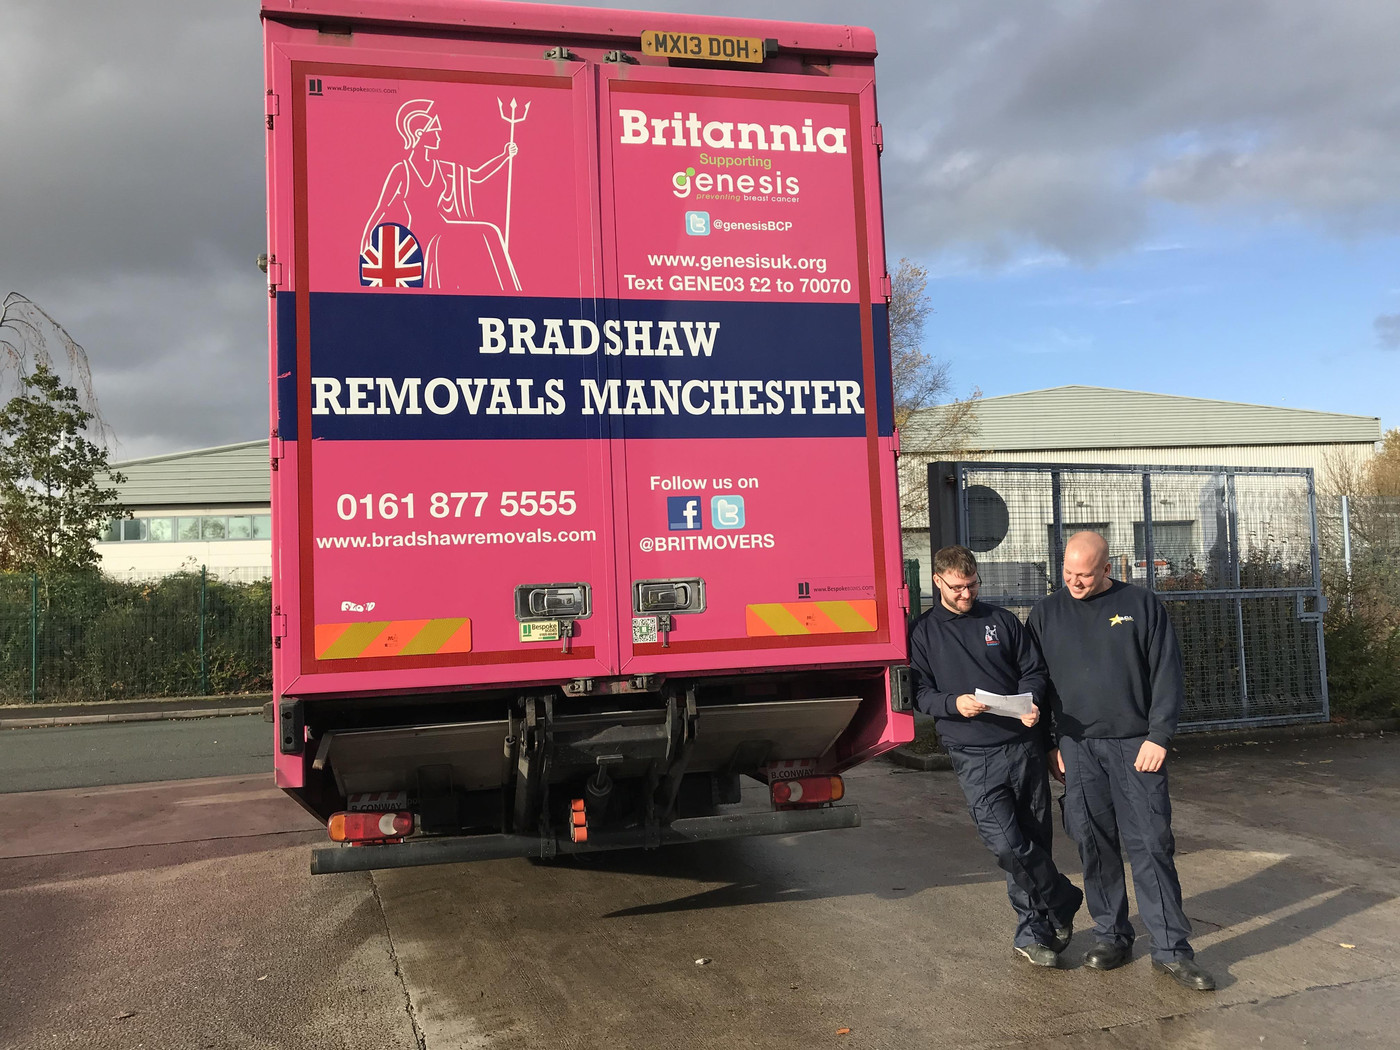 UK Removals to Manchester Britannia Bradshaw